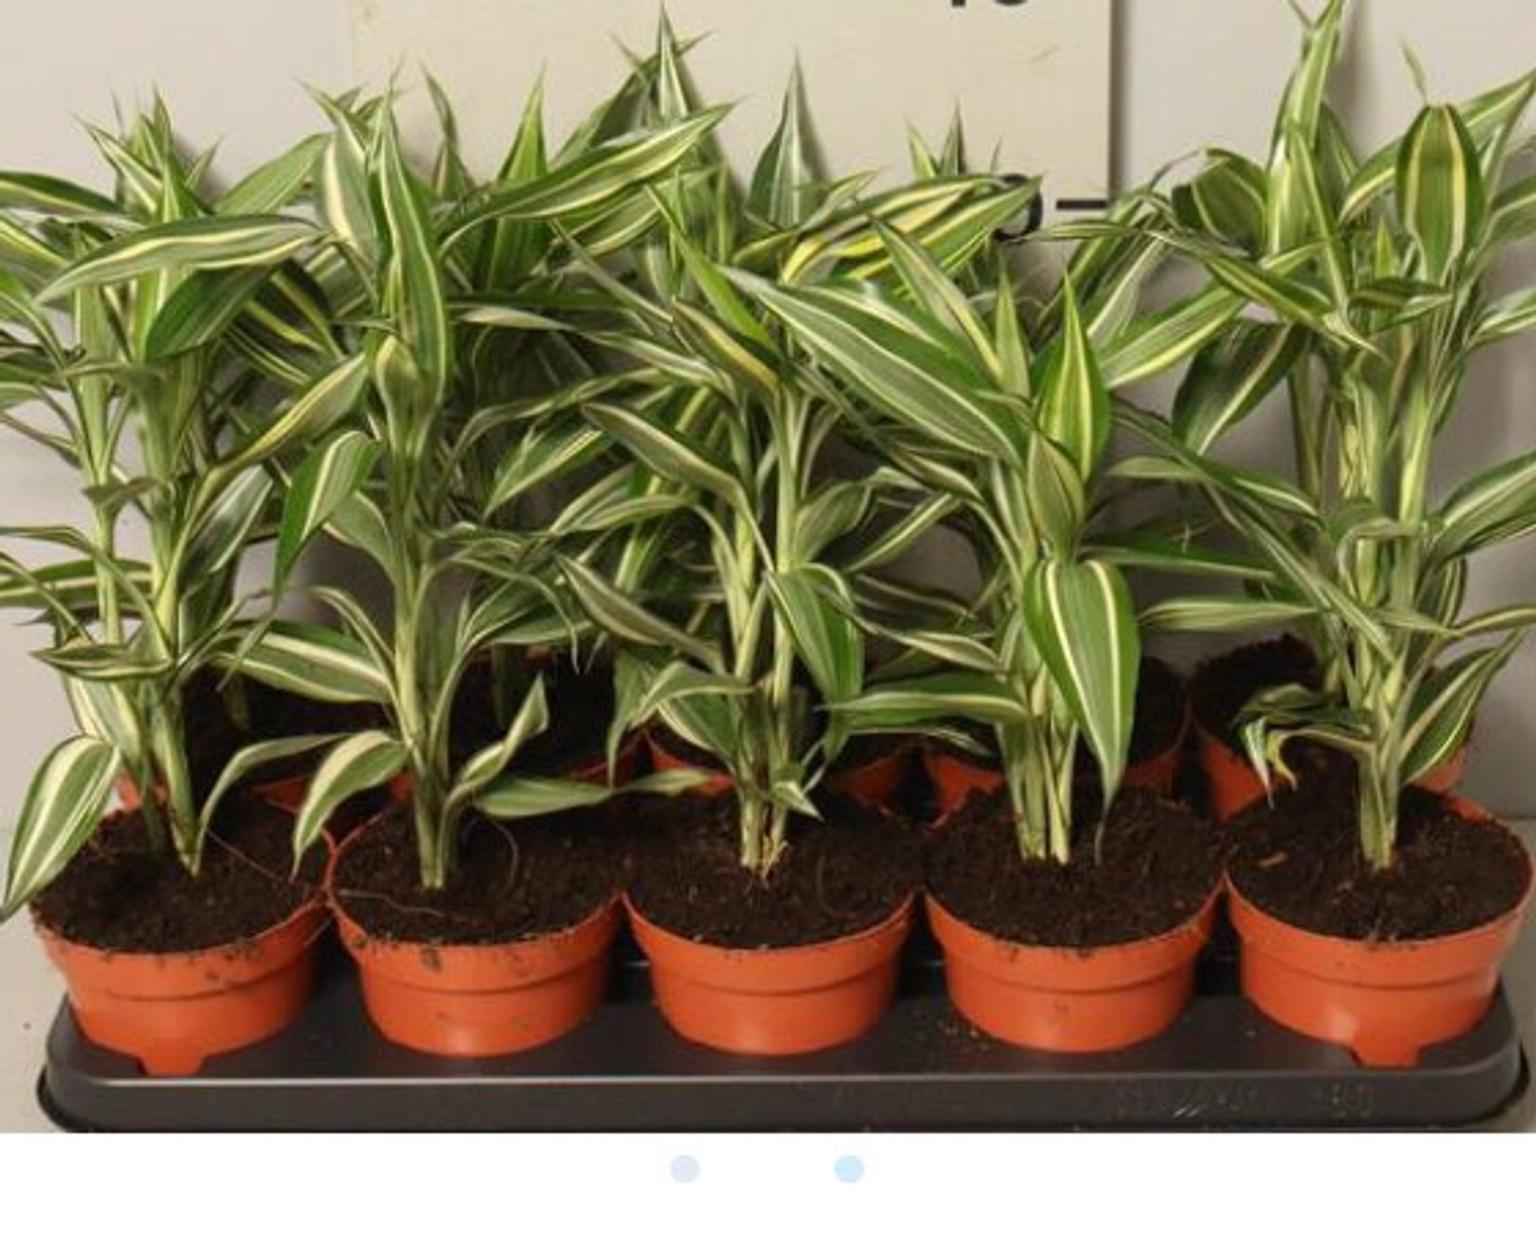 Dracaena lucky bamboo indoor house plants